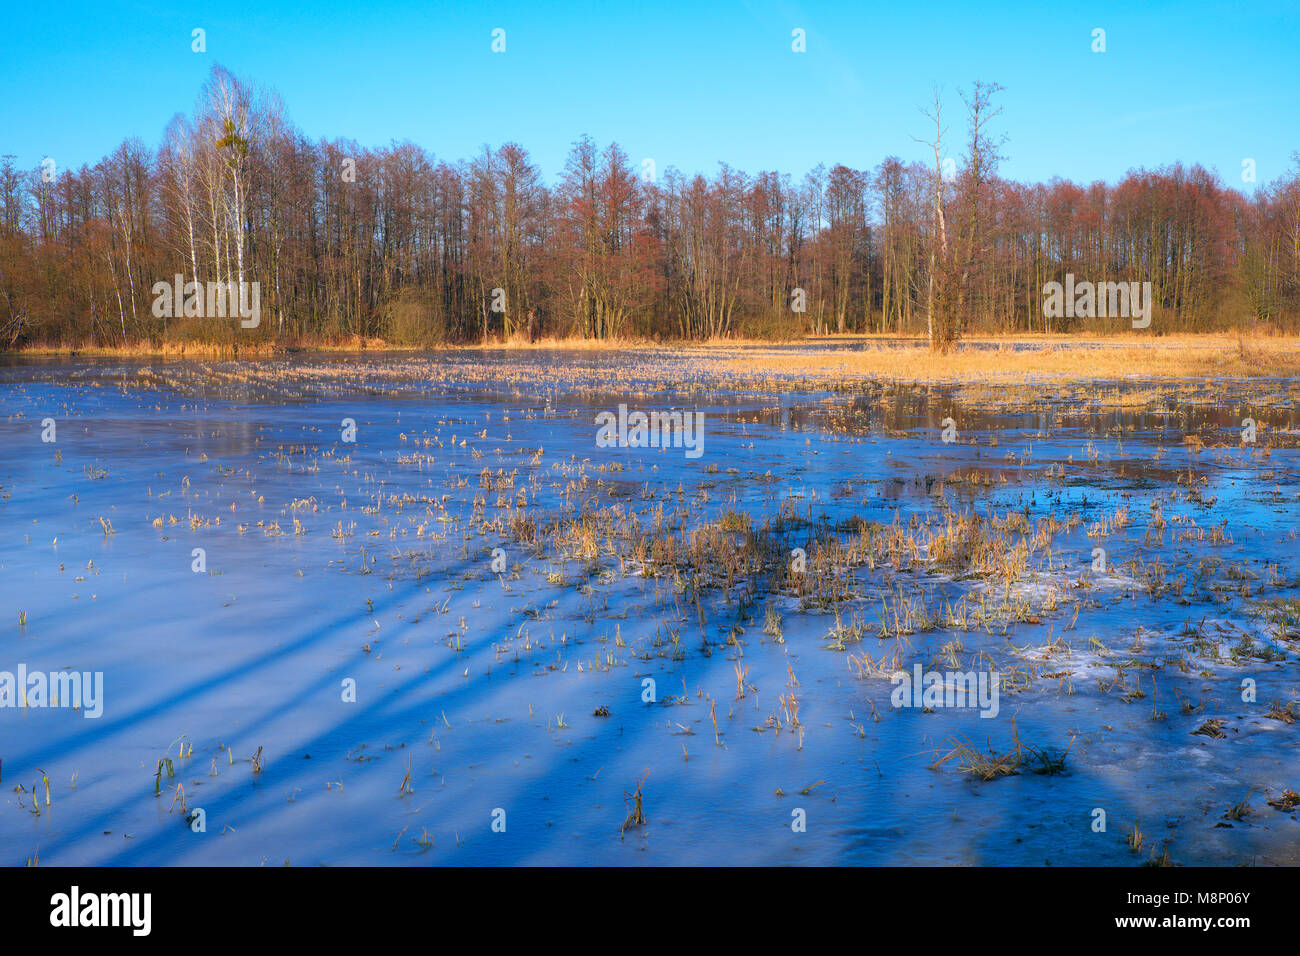 Panoramic view of flooded and frozen grassy forest meadows in early spring season in central Poland mazovian plateaus Stock Photo